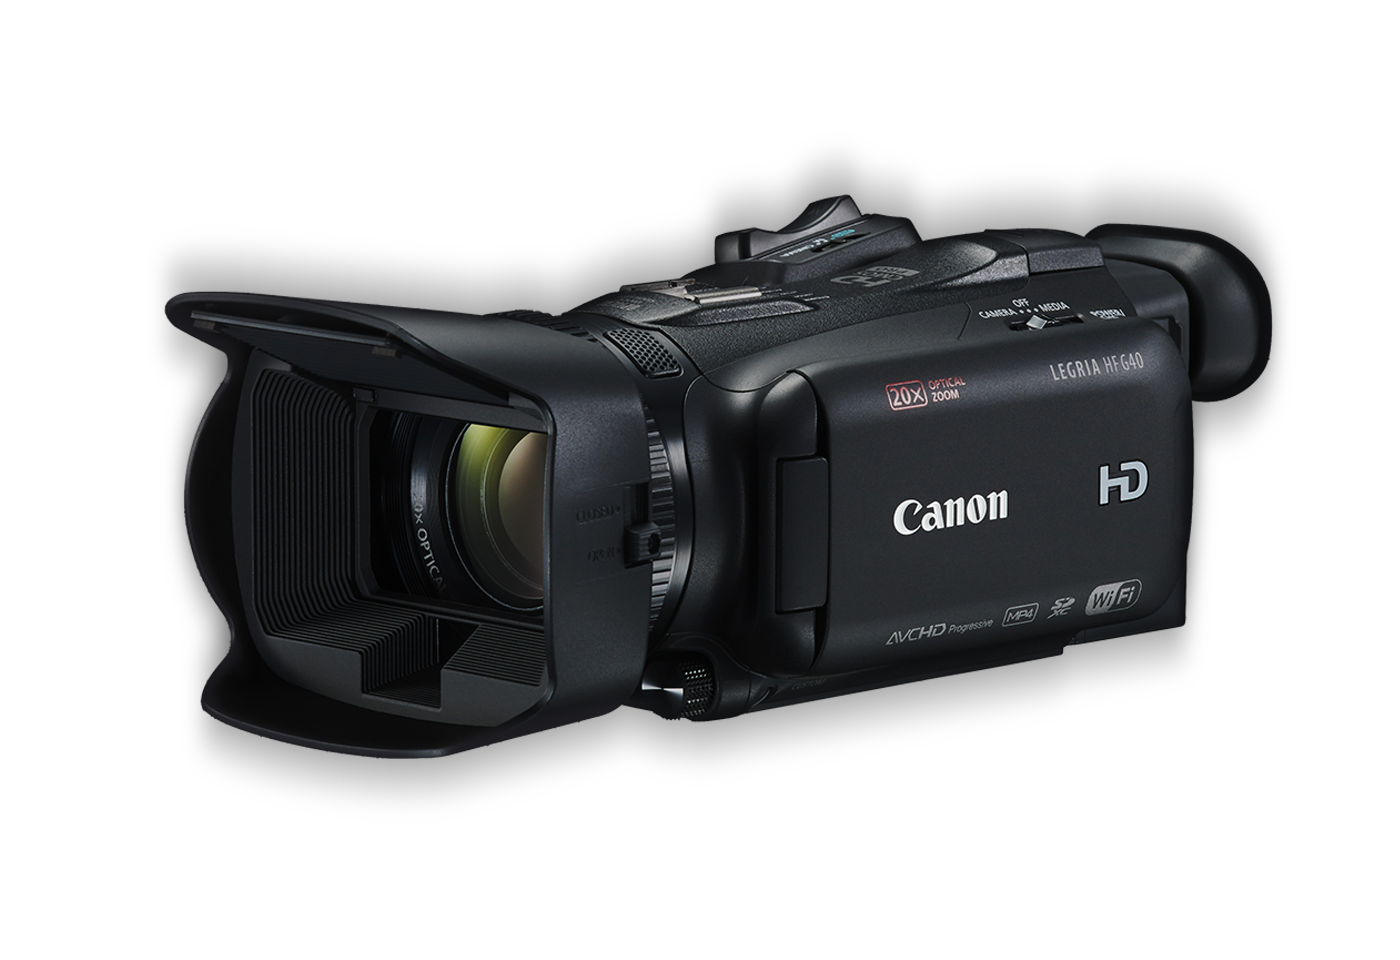 Canon LEGRIA HF G40 digital video camera black front angled